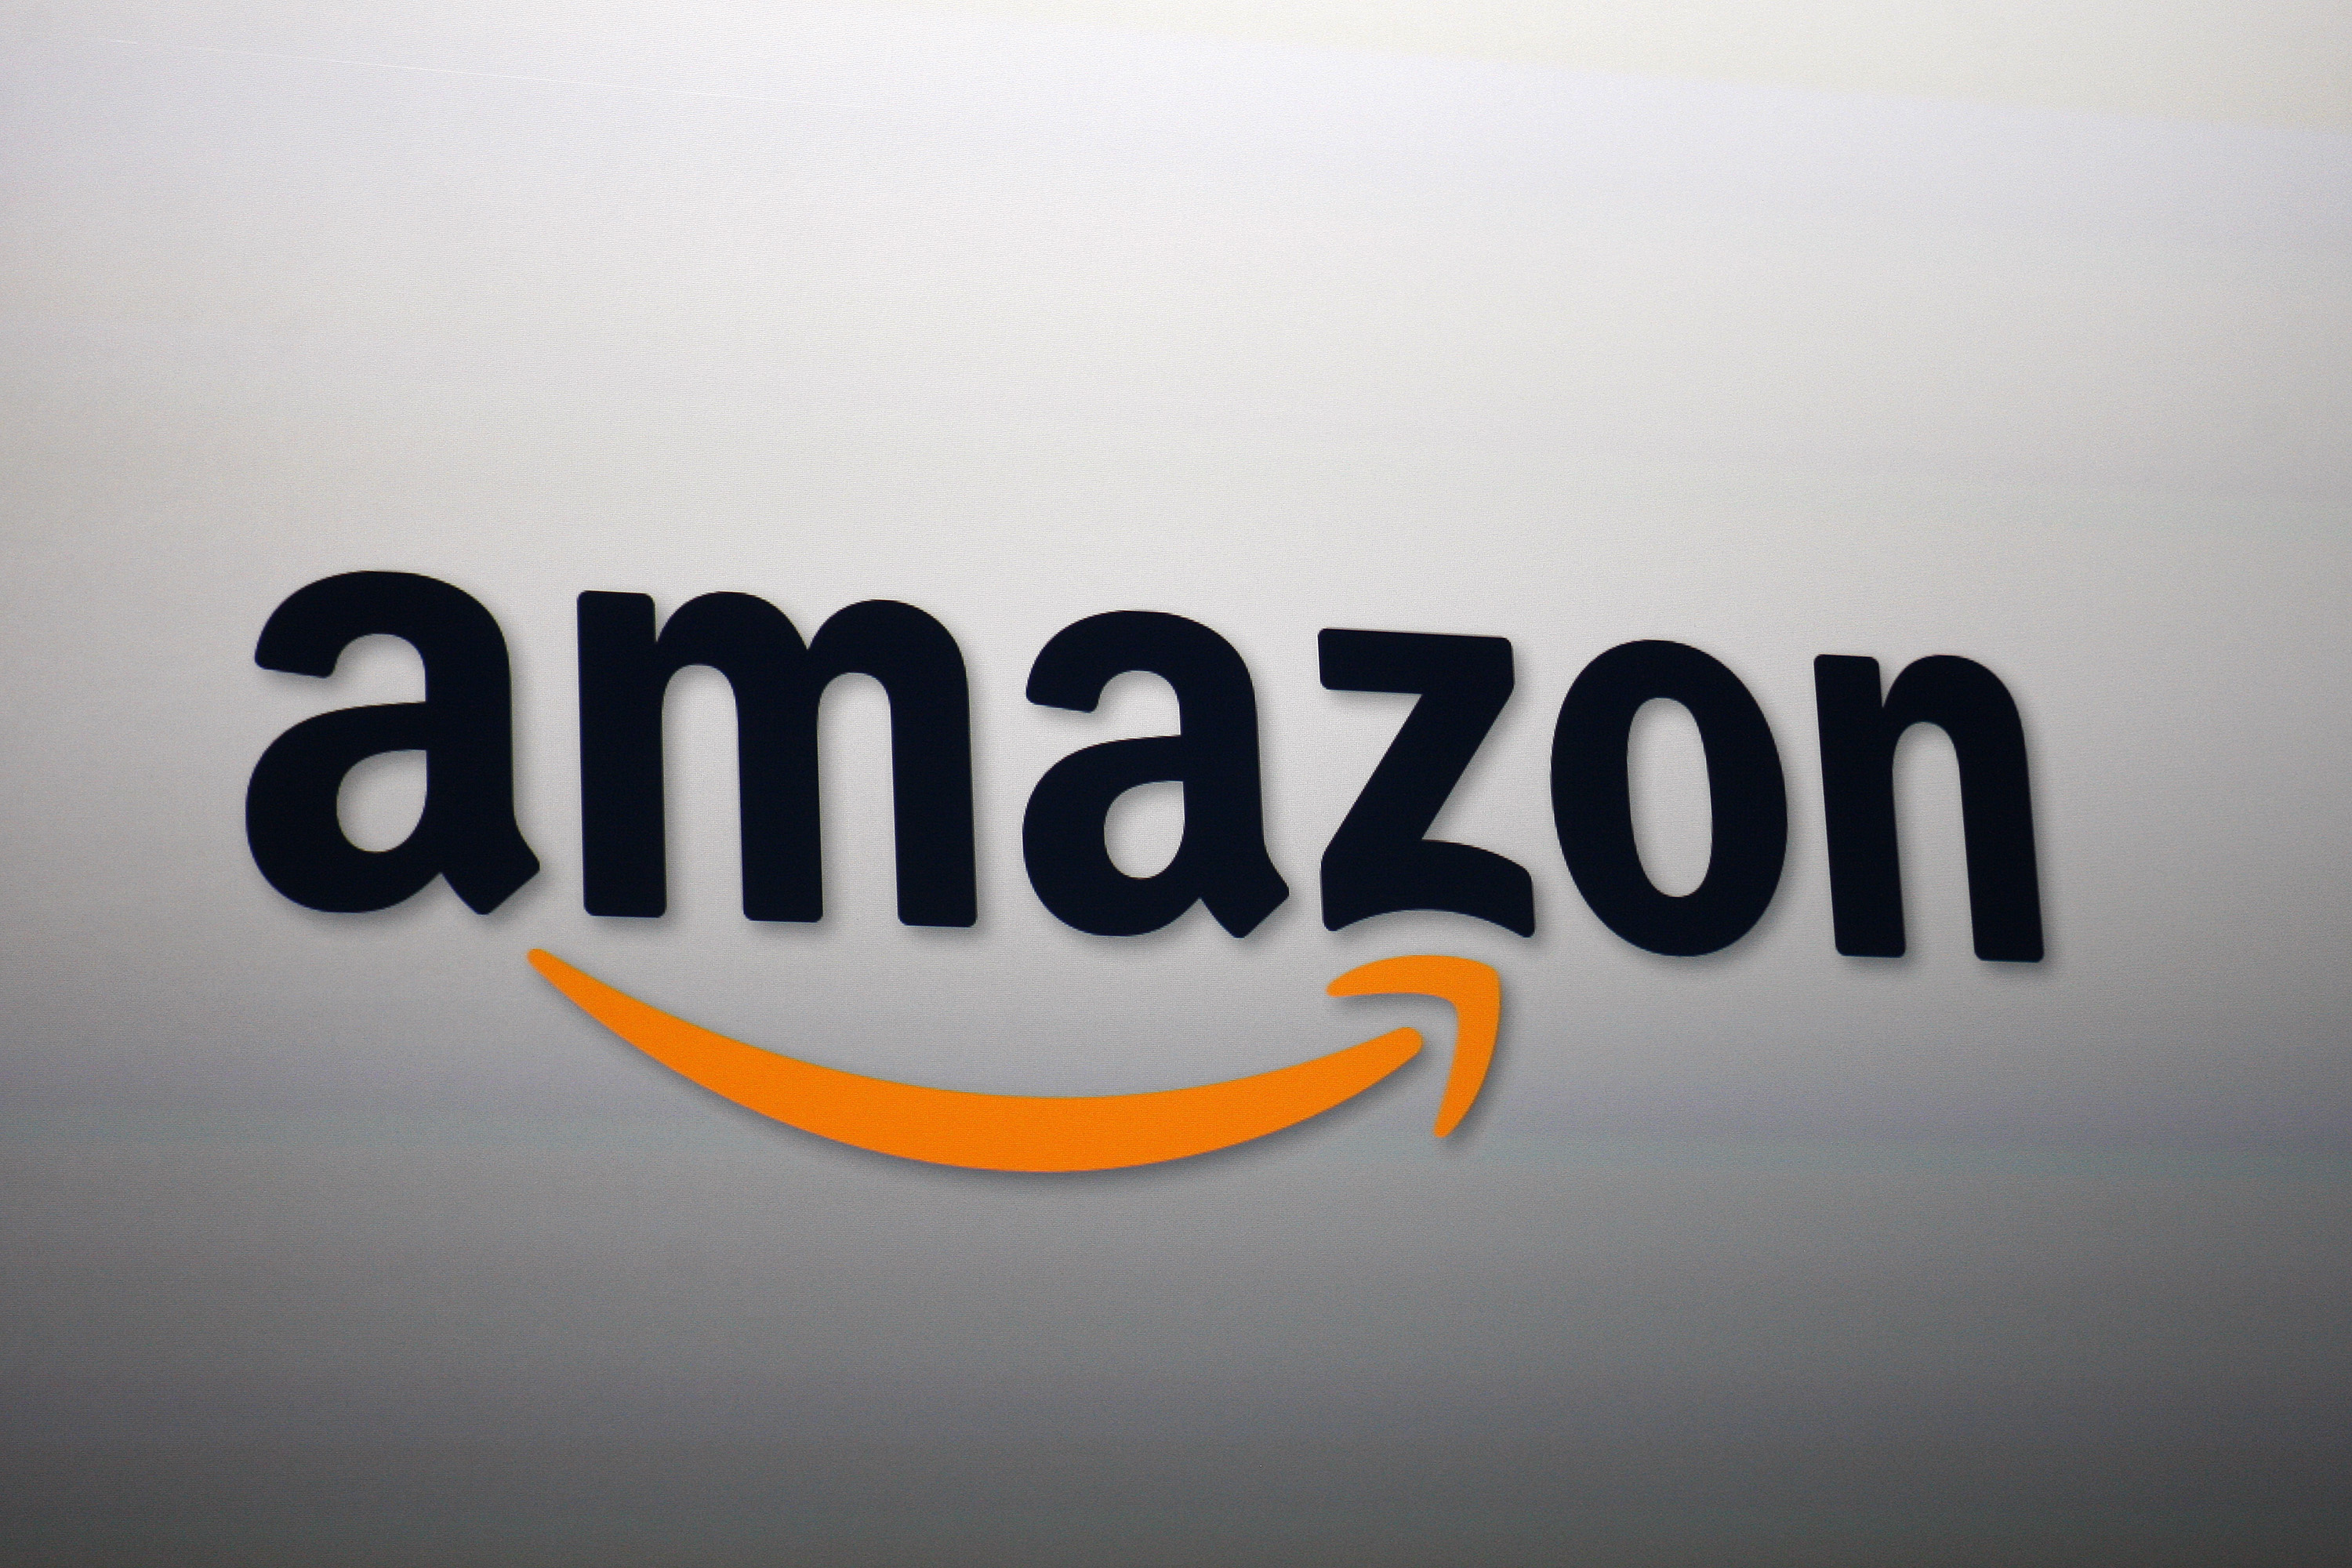 Amazon May Provide a Free Music Streaming Service For Prime Users